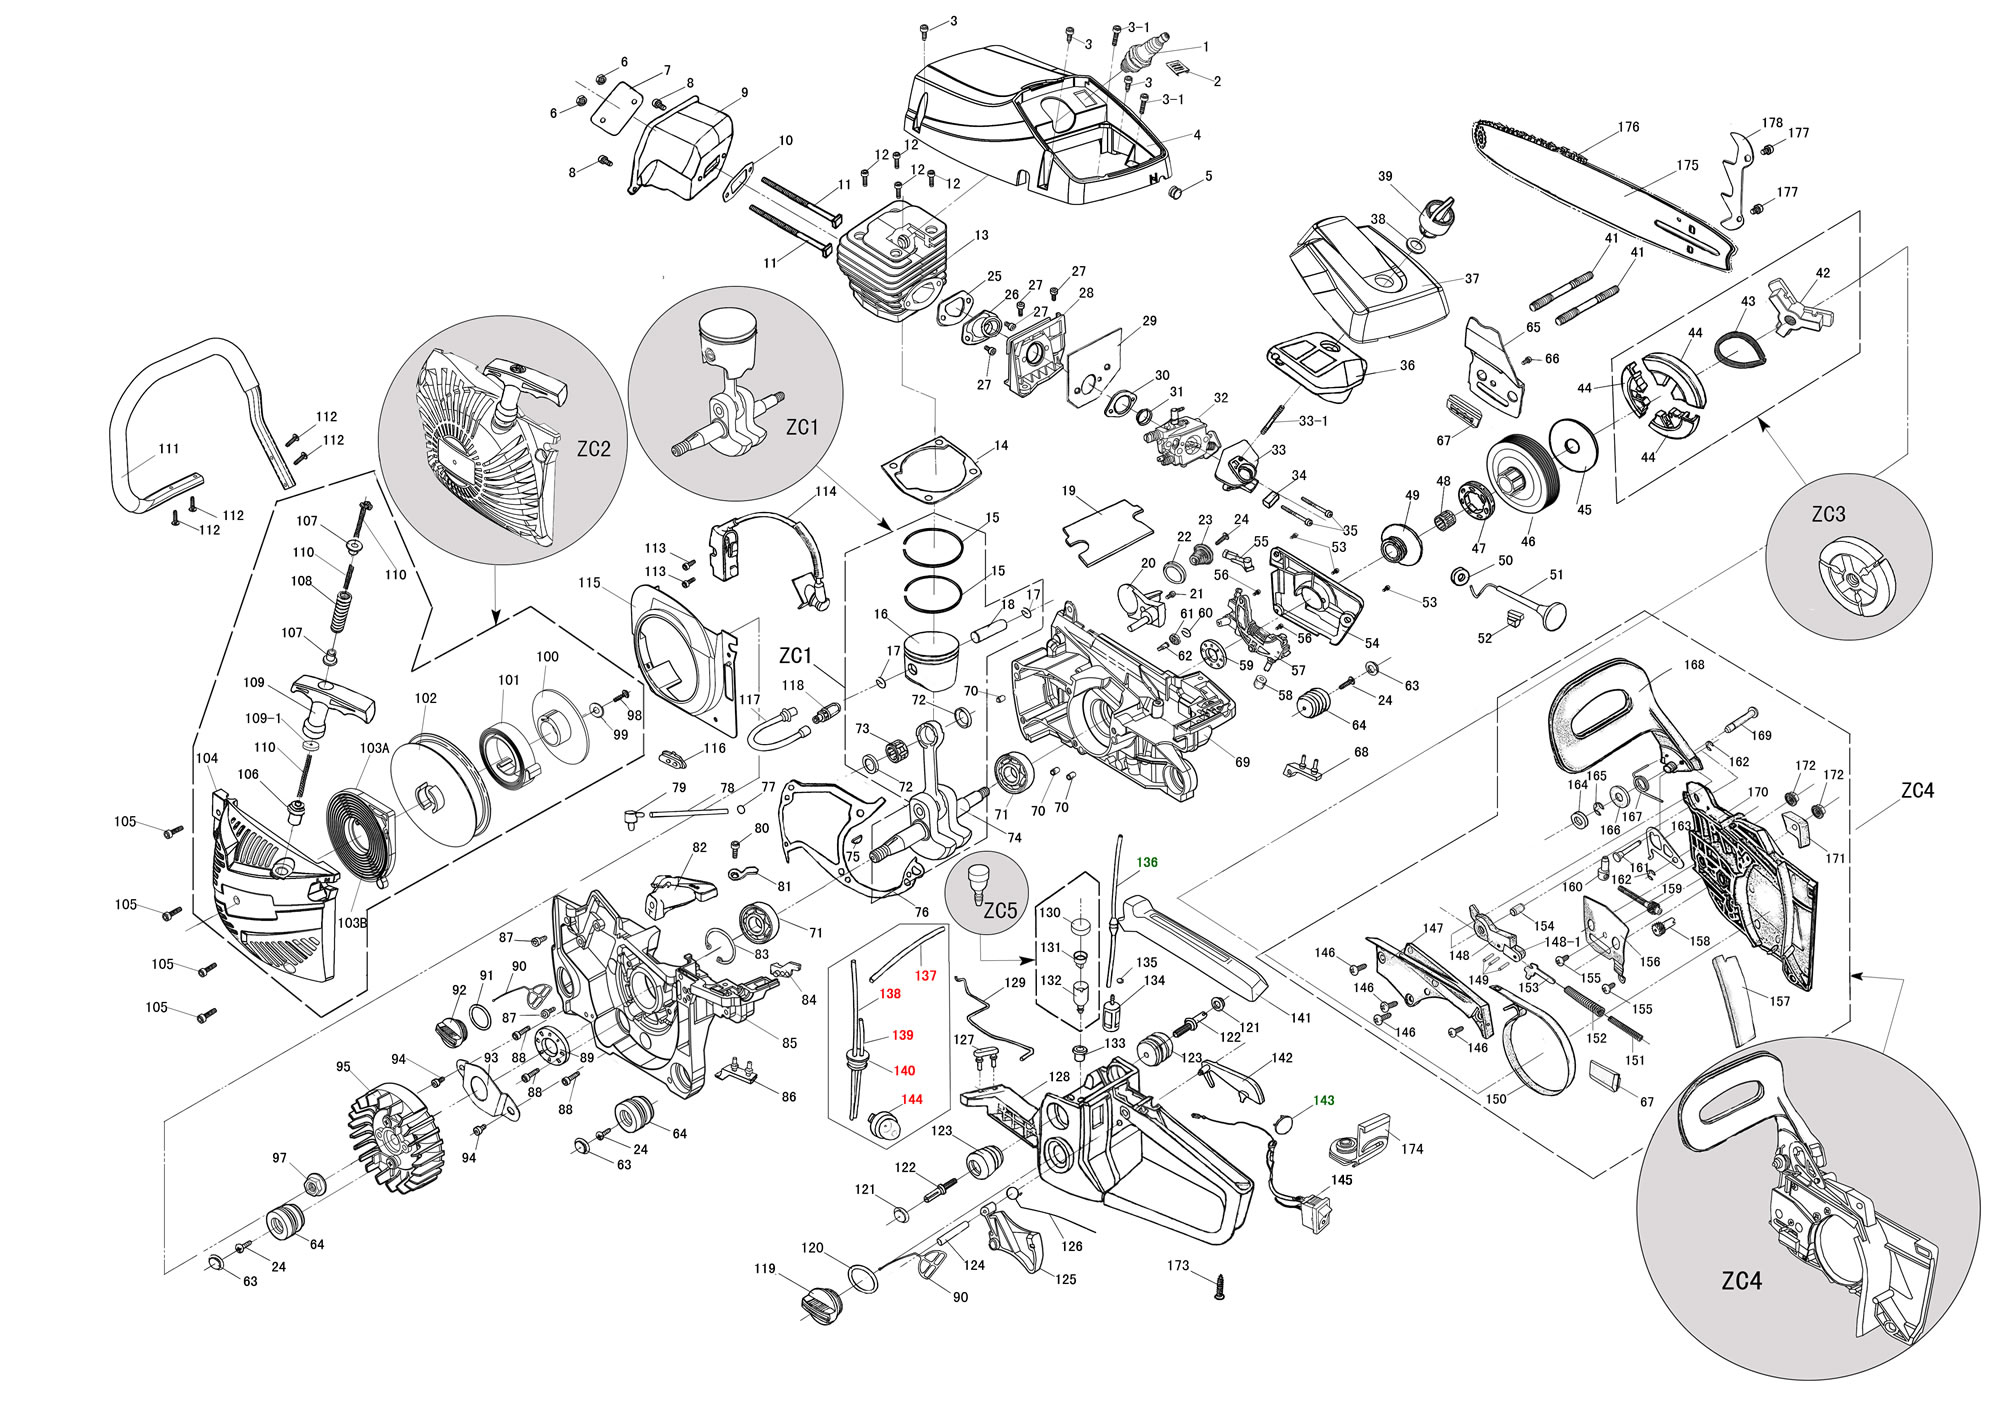 Stihl 025 Exploded Parts Diagram